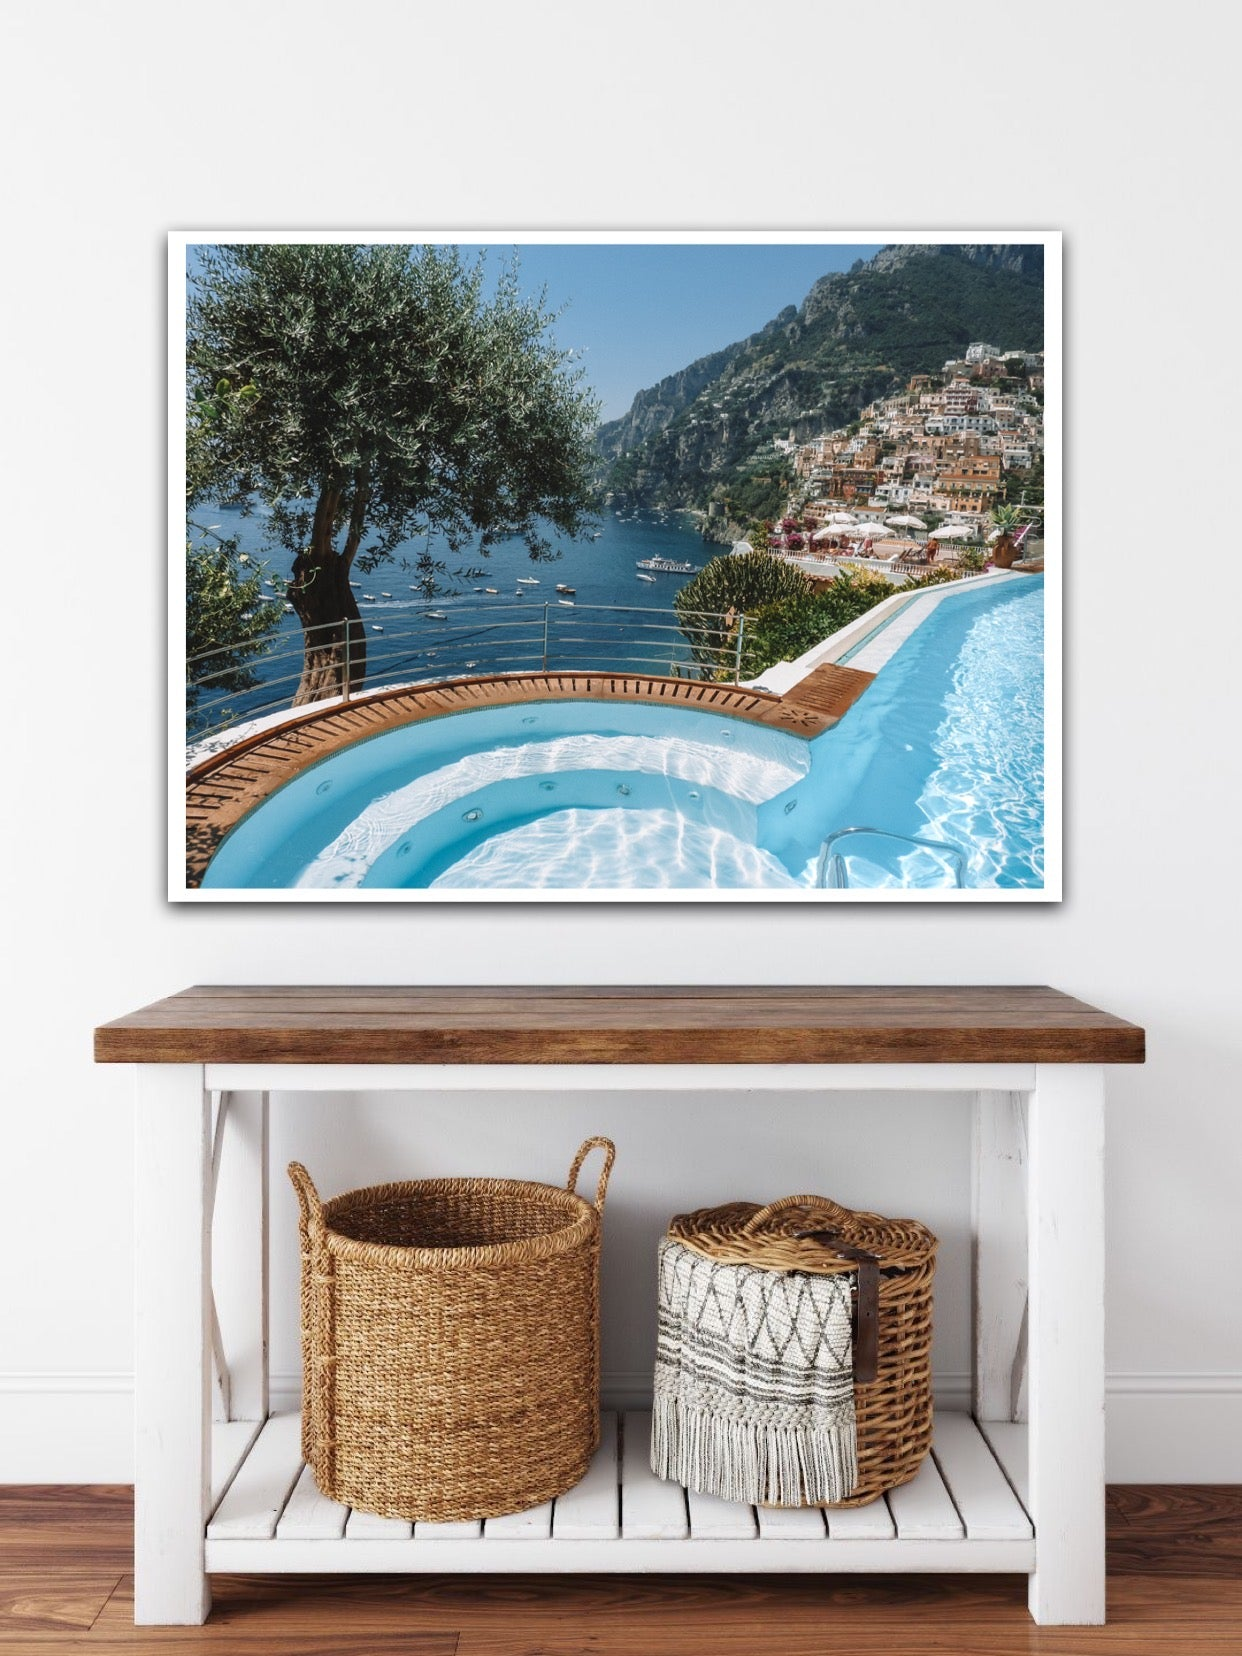 A Euro summer poolside or seaside in Positano and Atrani, Amalfi Coast Italy. Best hotel infinity pool and view in Positano Amalfi Coast